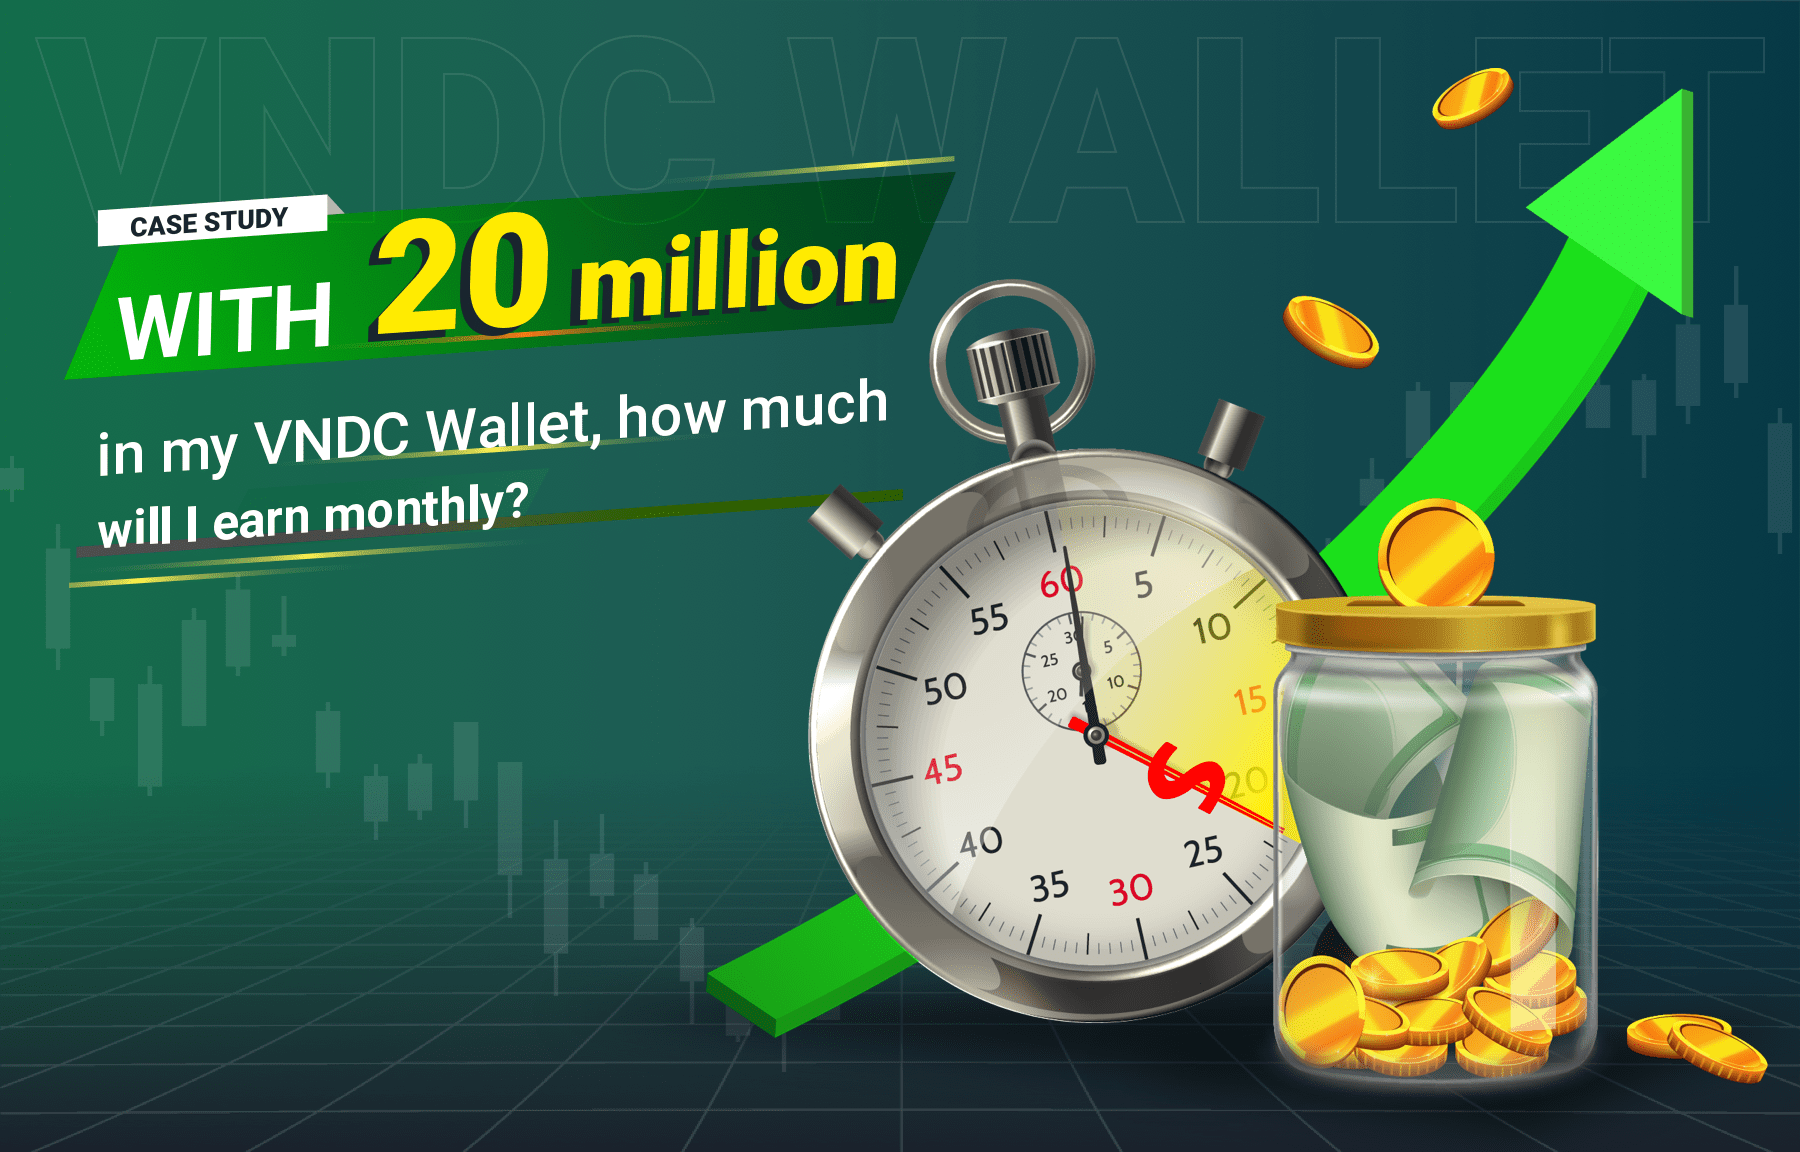 Case study: With 20 million VND in my VNDC Wallet, what is my monthly income?